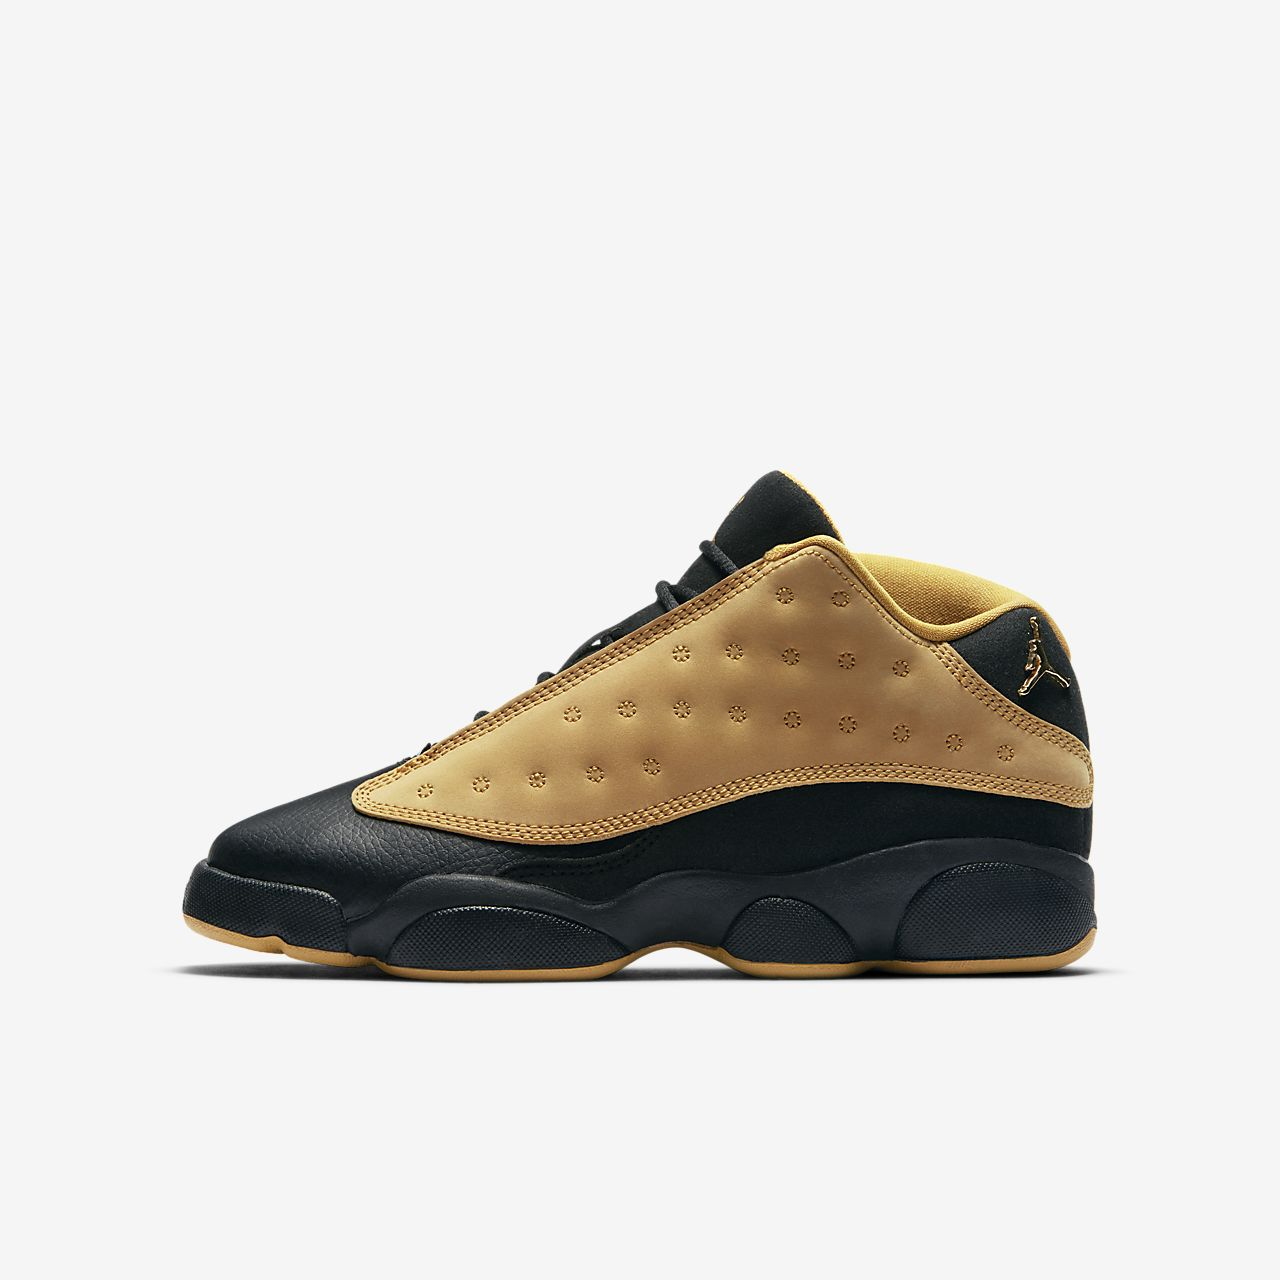 Air Jordan 13 Retro Low Sabatilles - Nen/a